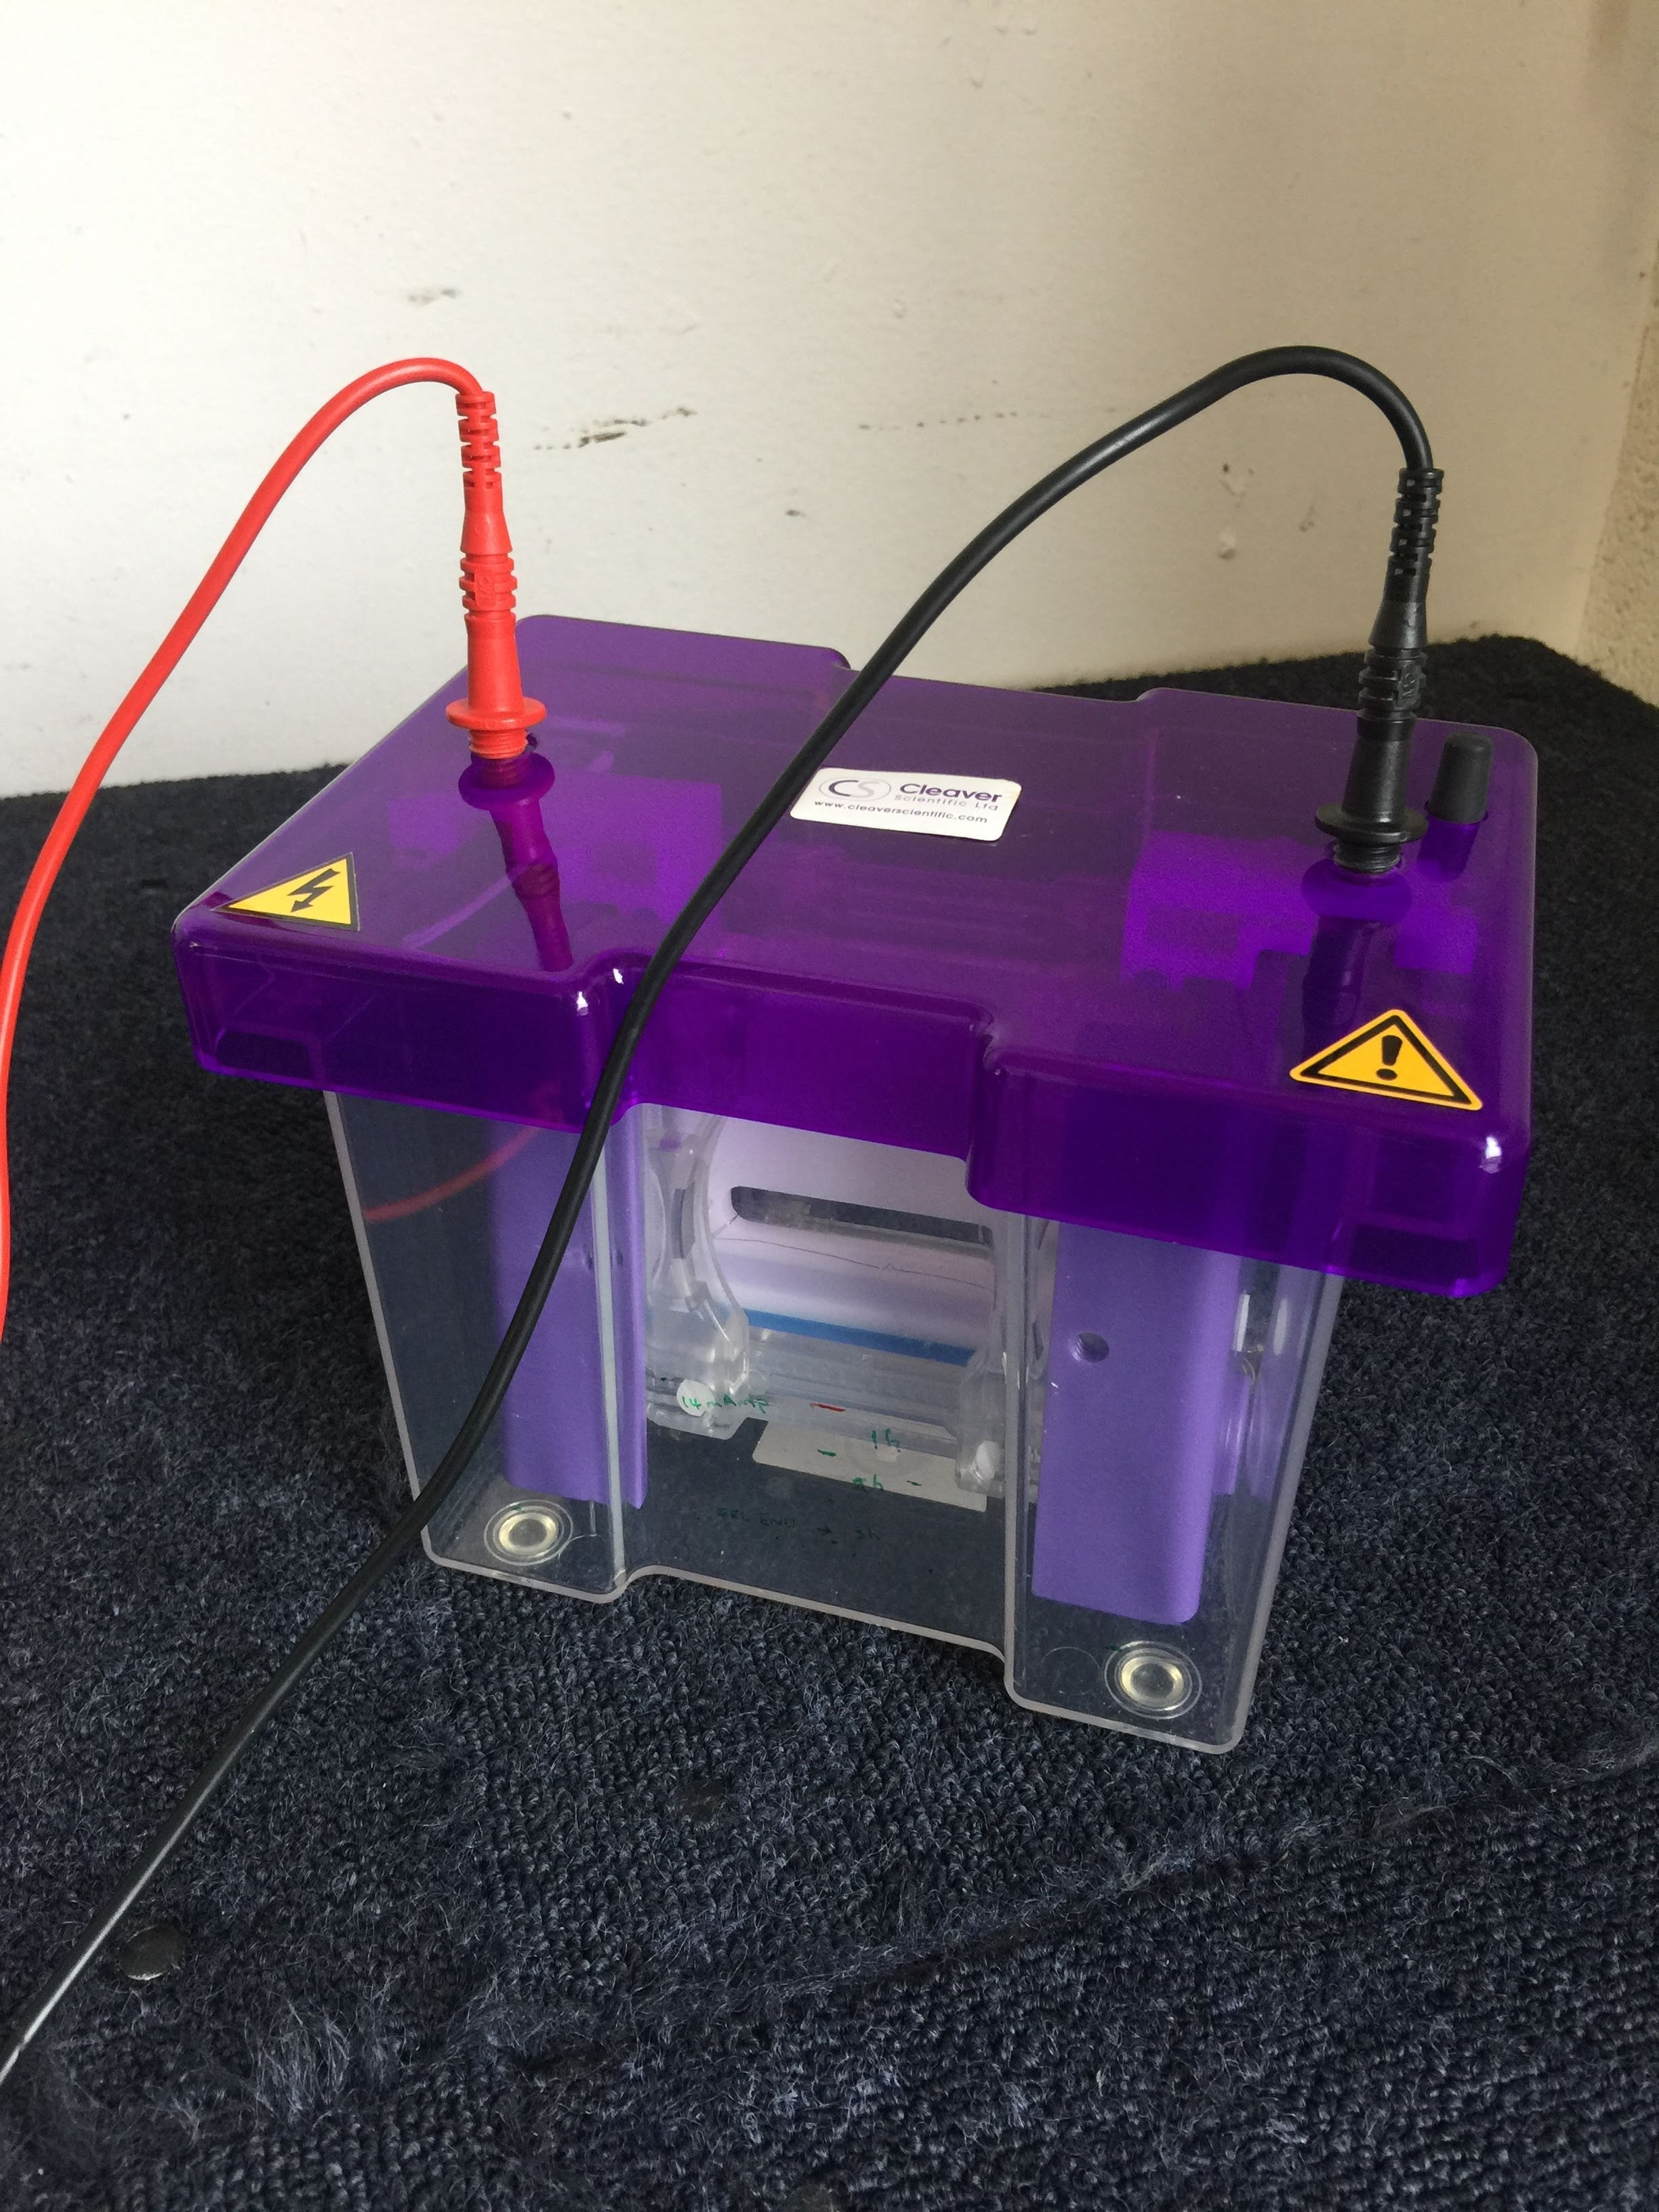 Fisherbrand Gel Unit with Cleaver Scientific Mini Vertical Protein Electrophoresis System and Thermo EC250-90 Power Supply